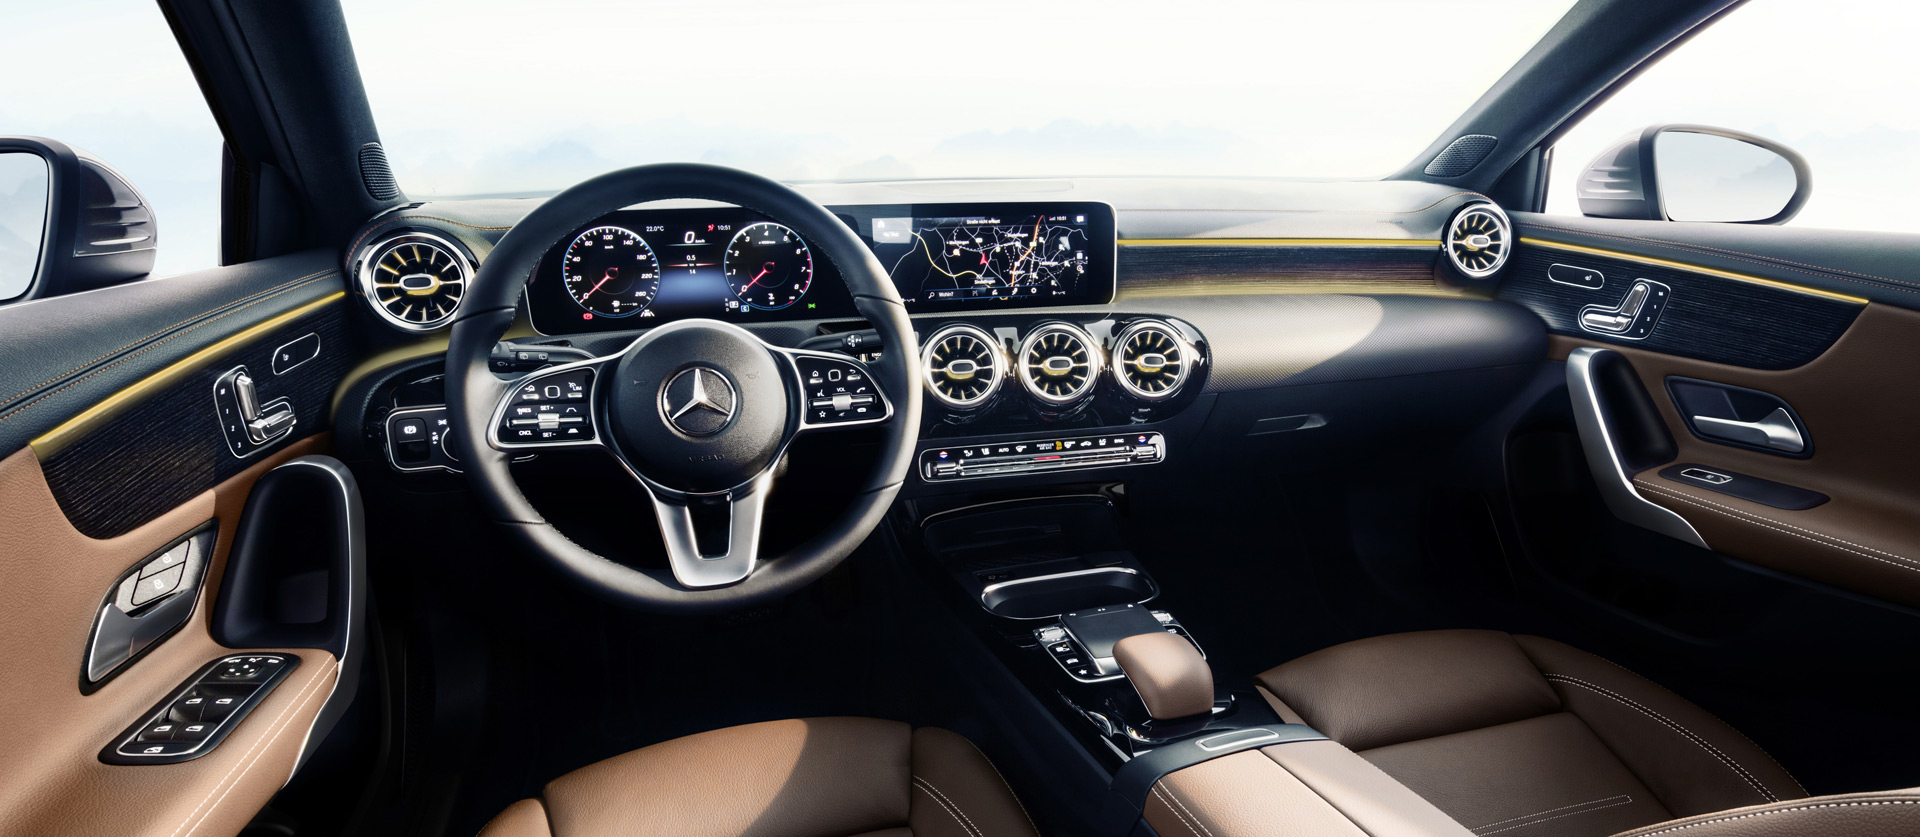 Major Step Up In Quality Design For Interiors Of Next Gen Mercedes